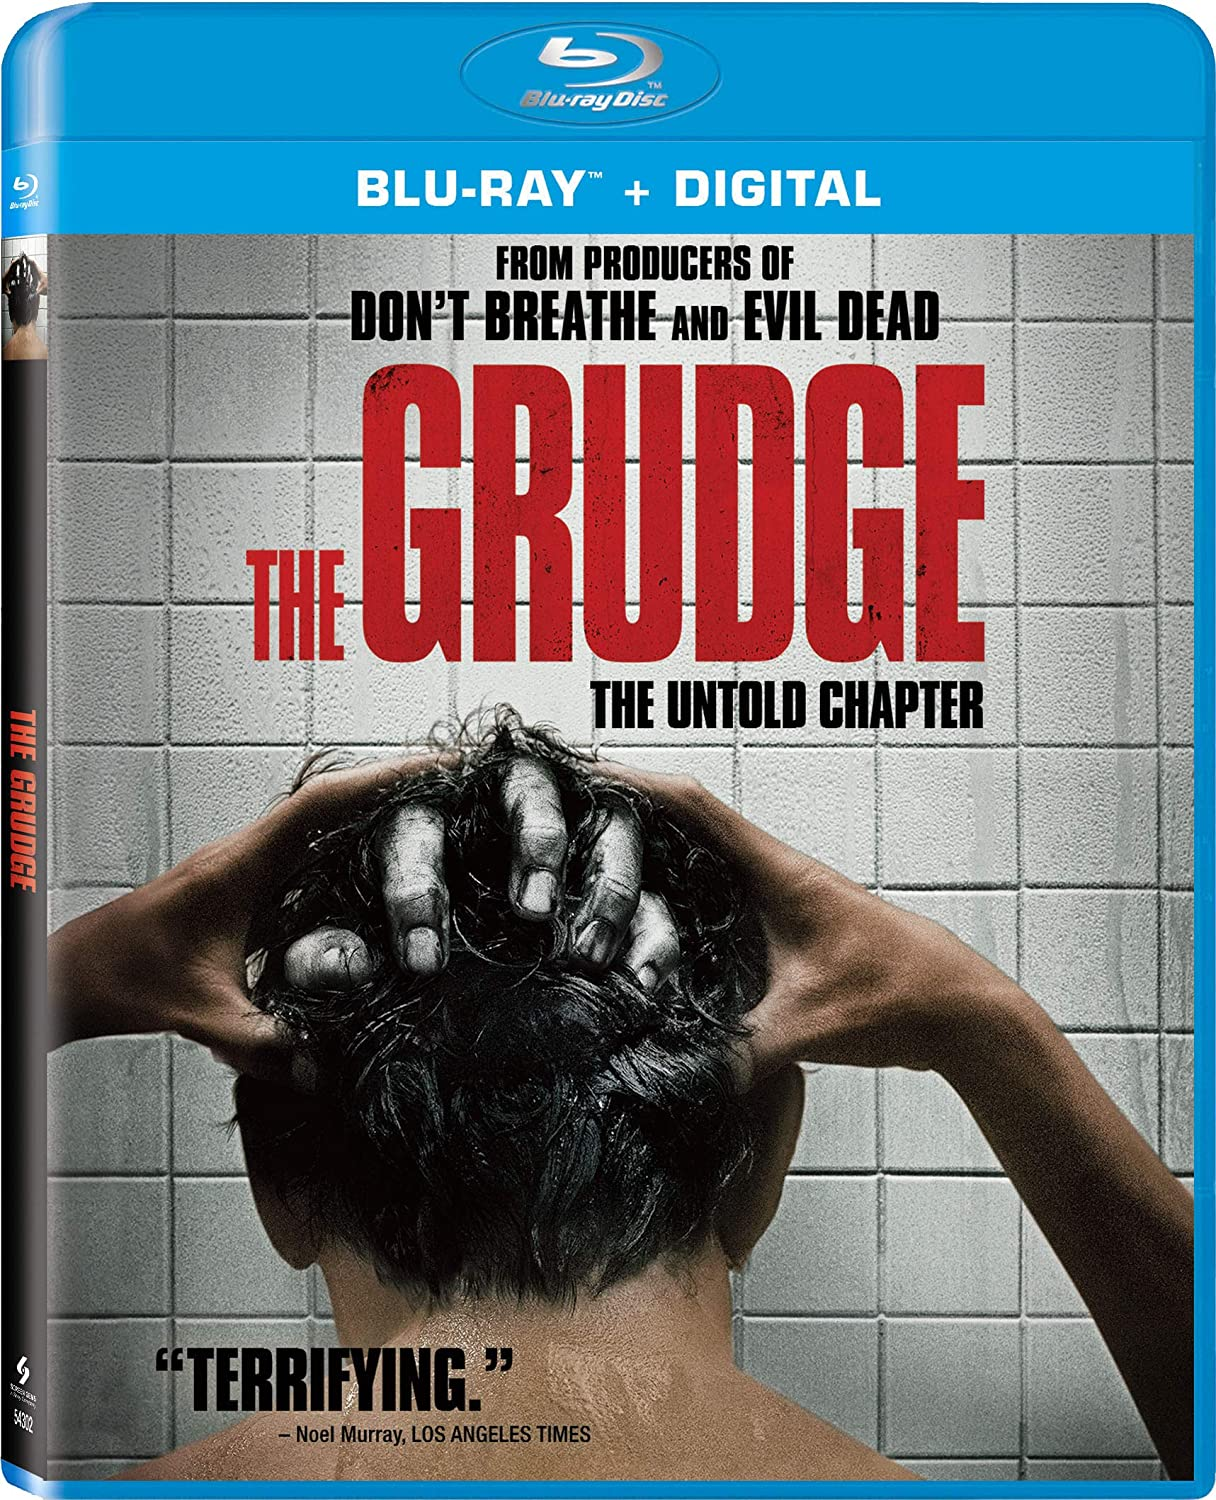 Amazon.com: The Grudge [Blu-ray]: Demian Bichir, Andrea ...